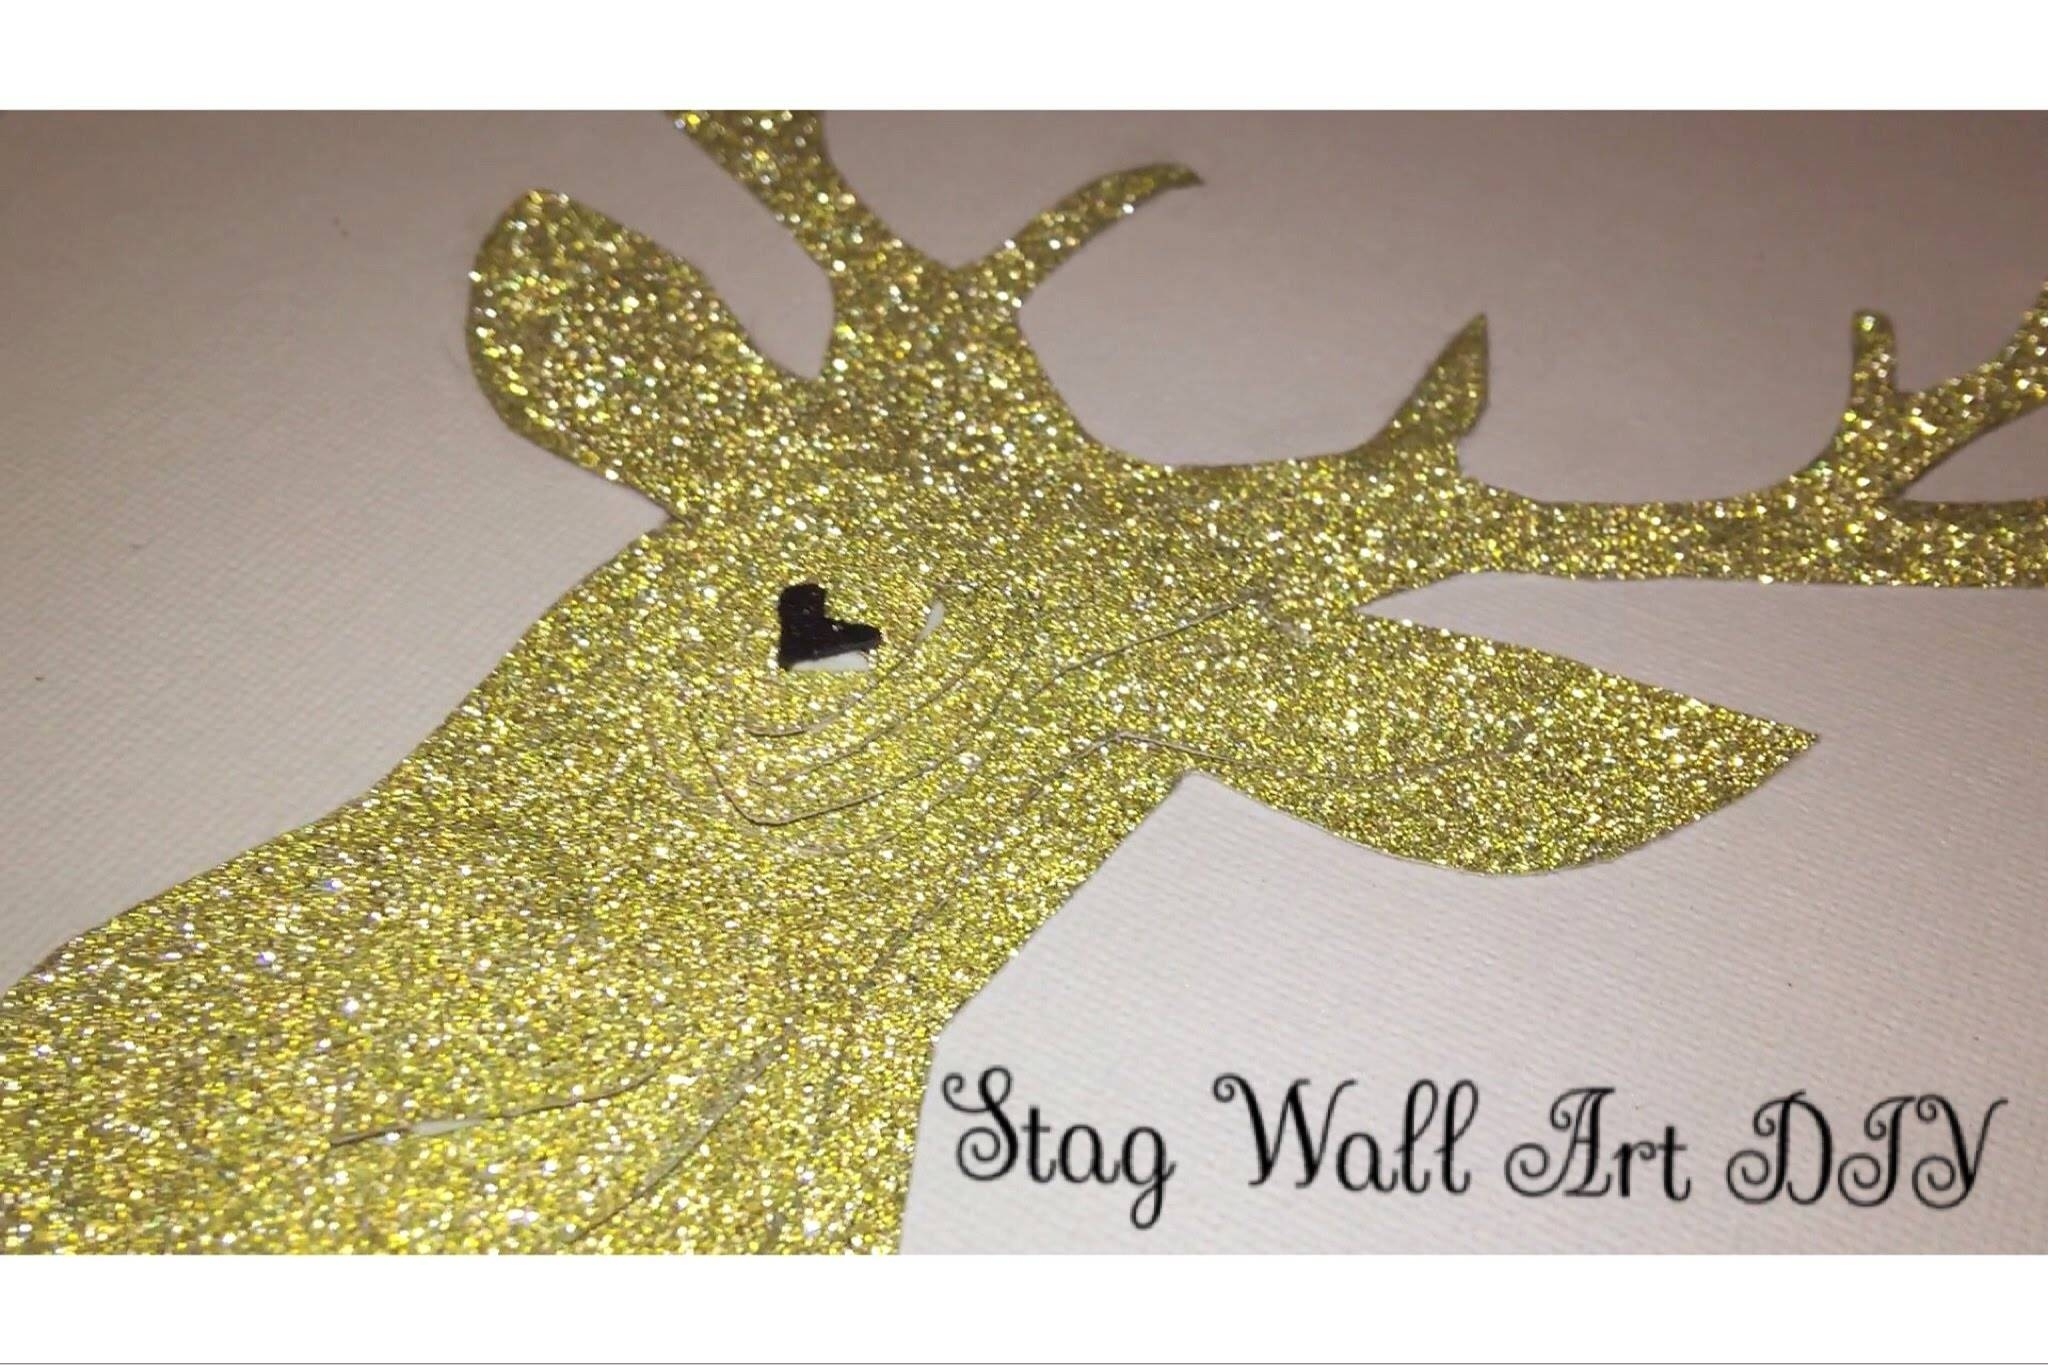 Diy 3D Stag Wall Art Tutorial | Easy Home Decor Diy – Youtube Throughout Most Up To Date Diy 3D Wall Art Decor (View 7 of 20)